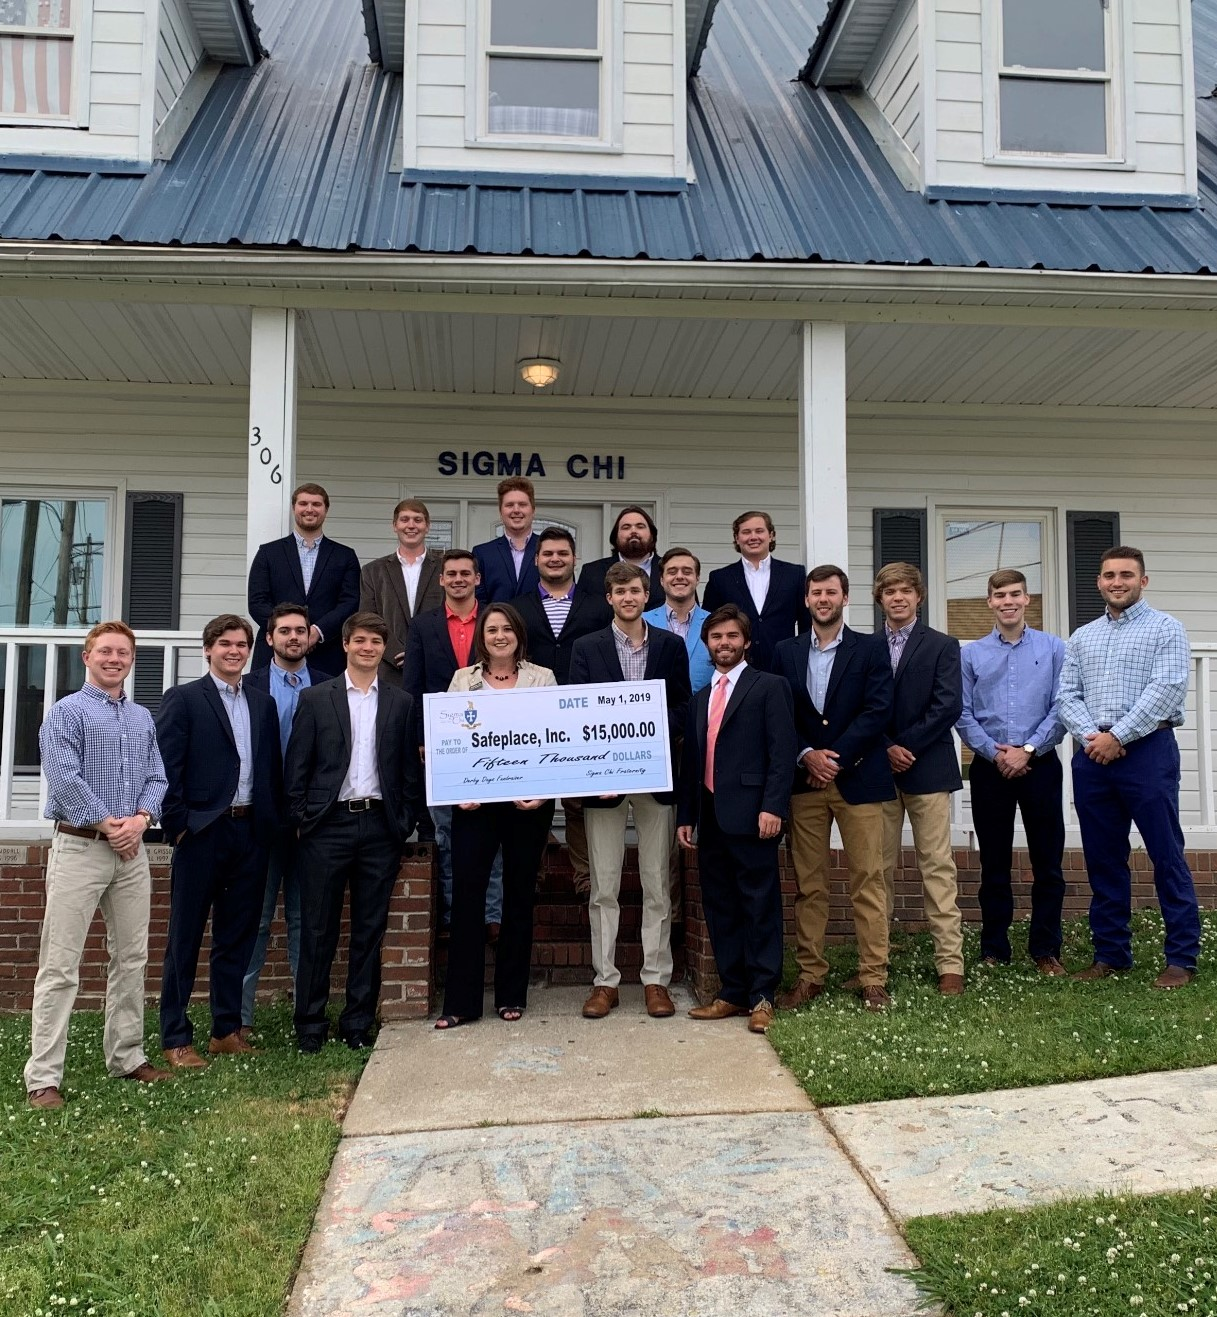 The brothers of sigma chi stand outside their house with a representative from Safe Place, presneting the charity with a $15,000 check from the fraternity's derby days competition.